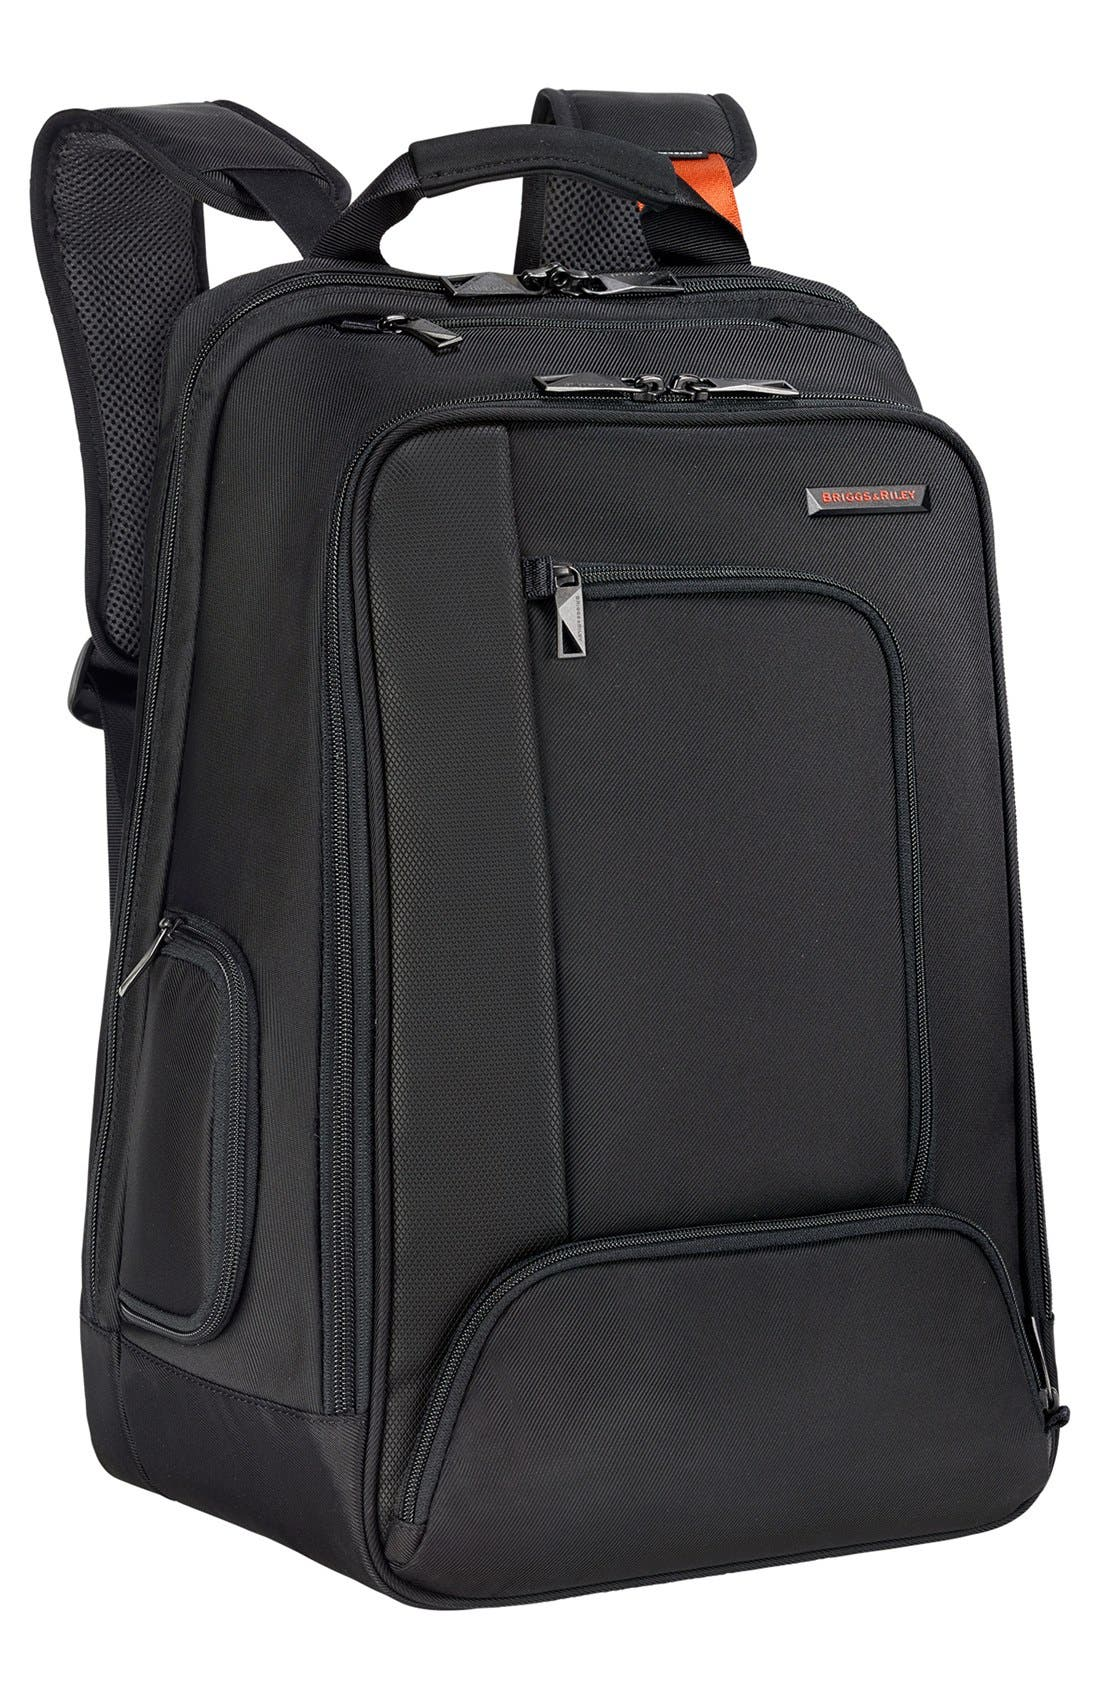 'Verb - Accelerate' Backpack,                             Main thumbnail 1, color,                             BLACK